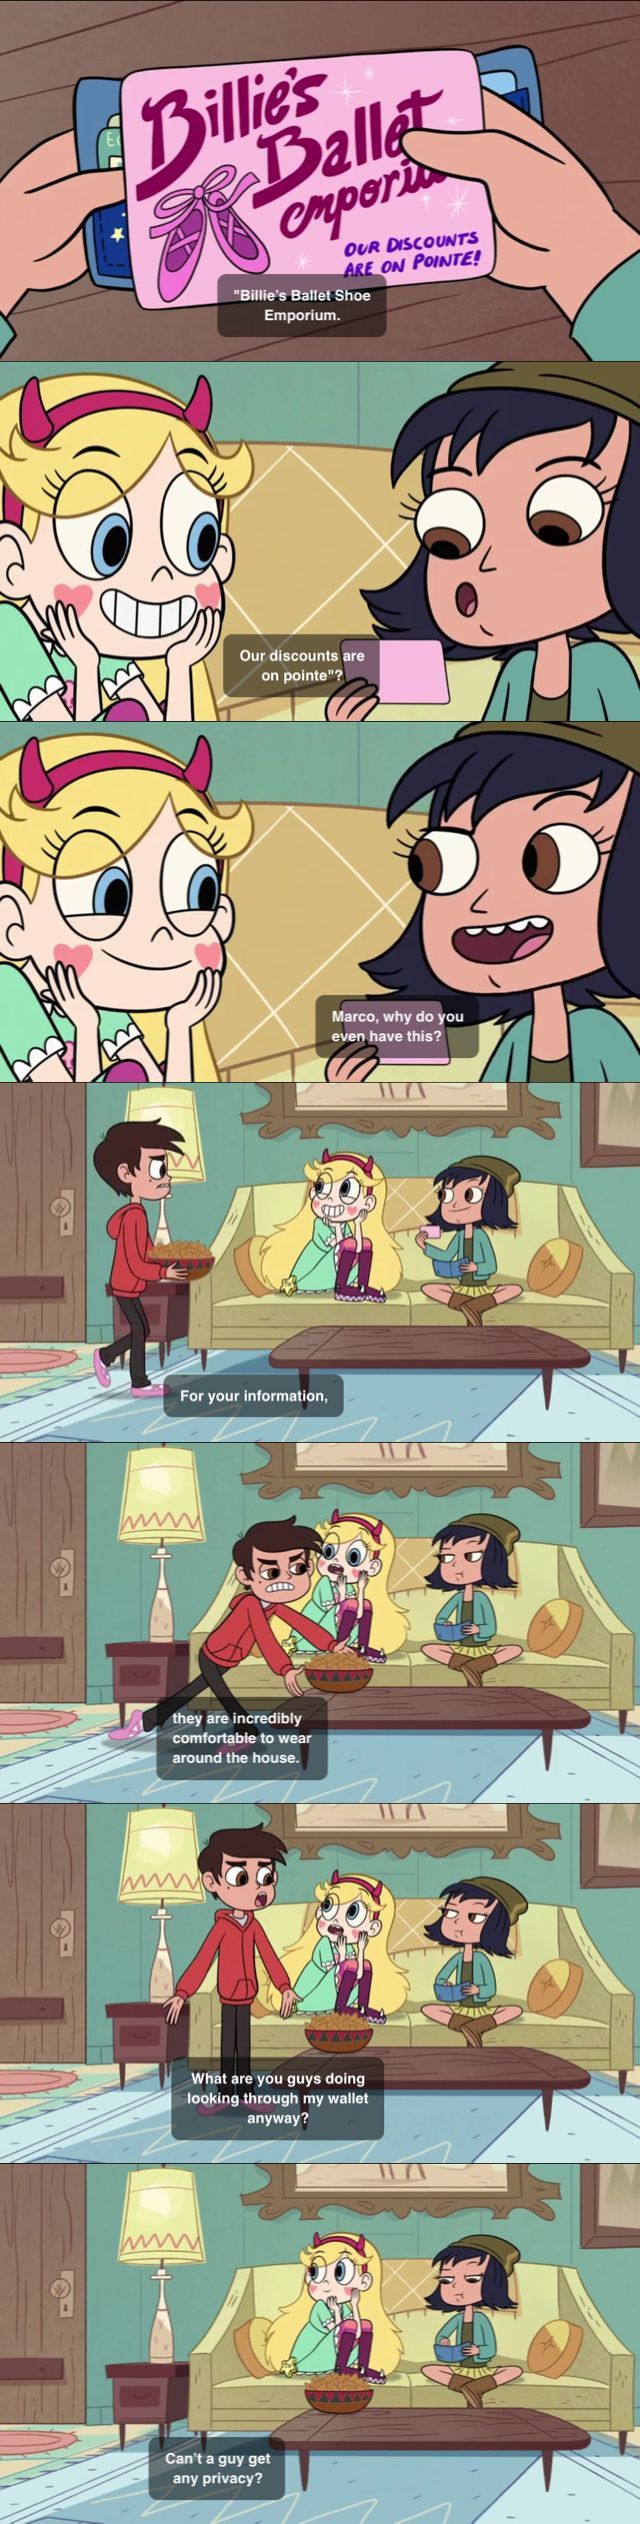 Marco what are you doing??   Star vs the forces of evil